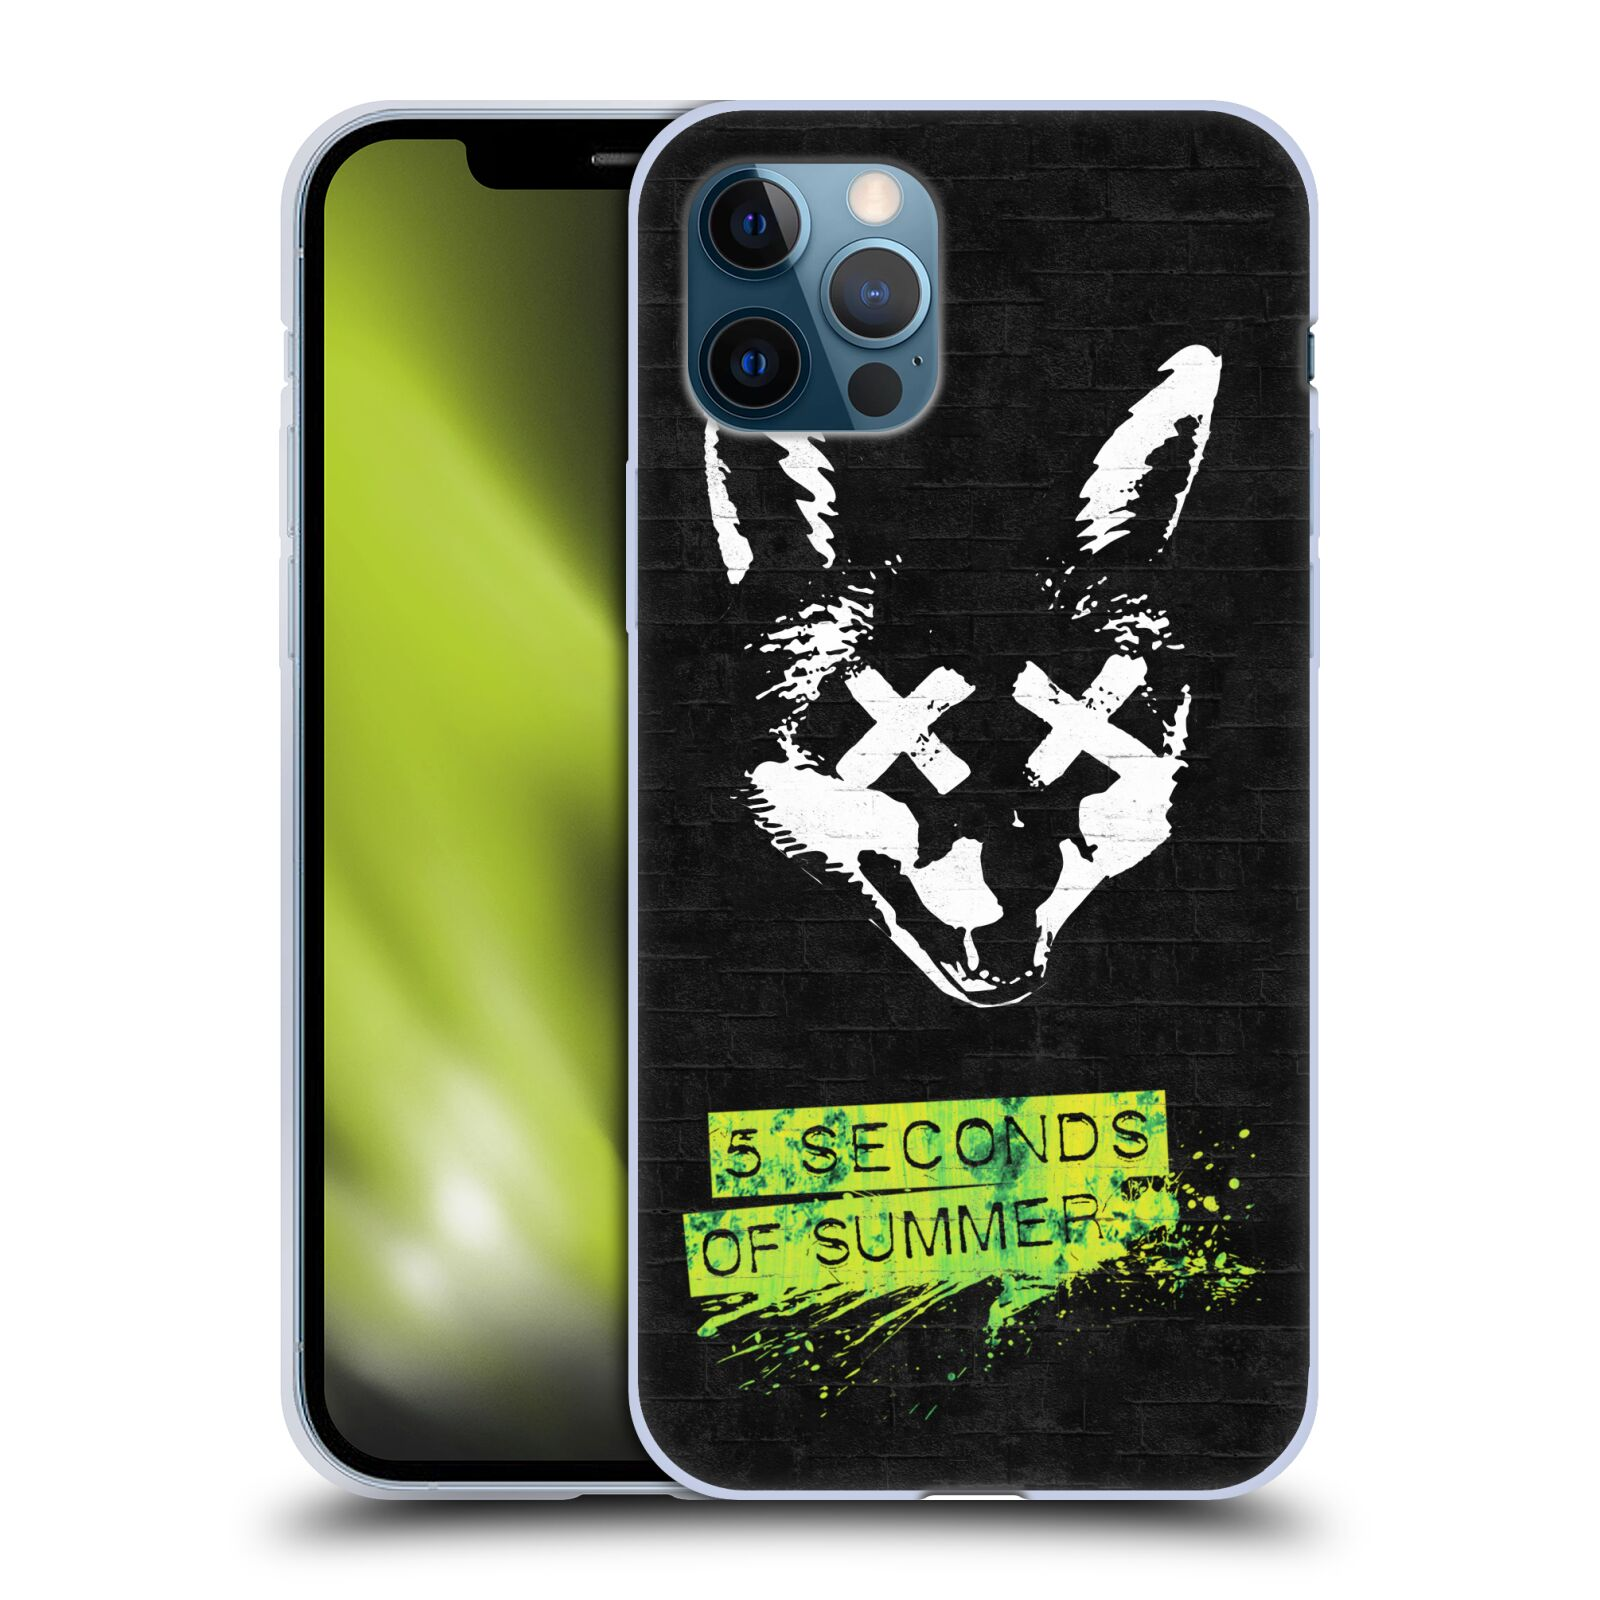 Silikonové pouzdro na mobil Apple iPhone 12 / 12 Pro - Head Case - 5 Seconds of Summer - Fox